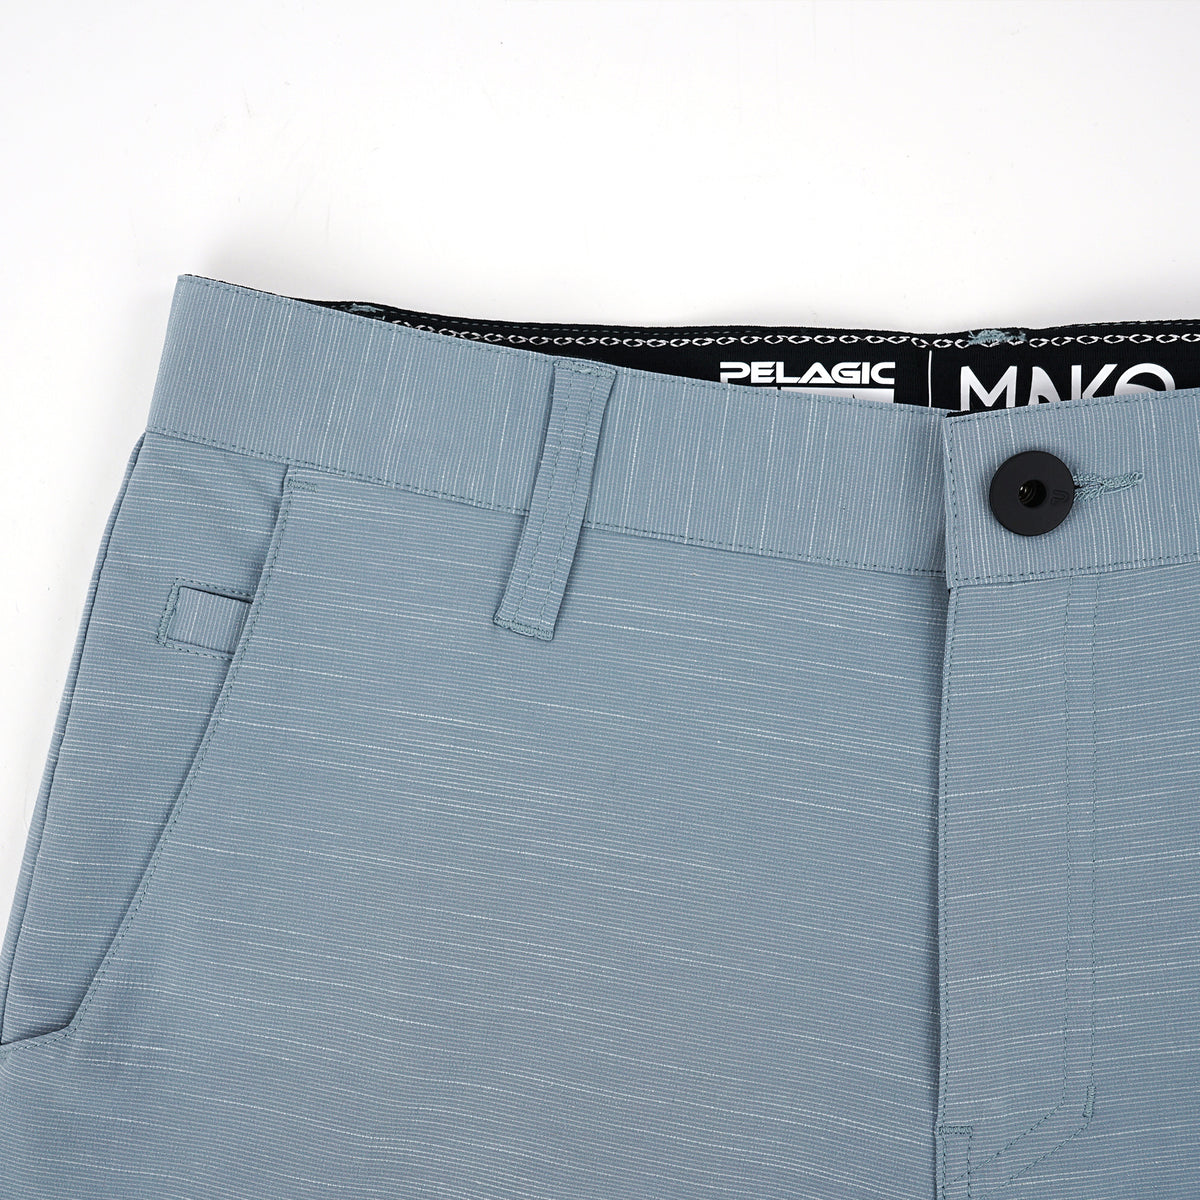 Mako XT Hybrid Fishing Shorts Big Image - 4